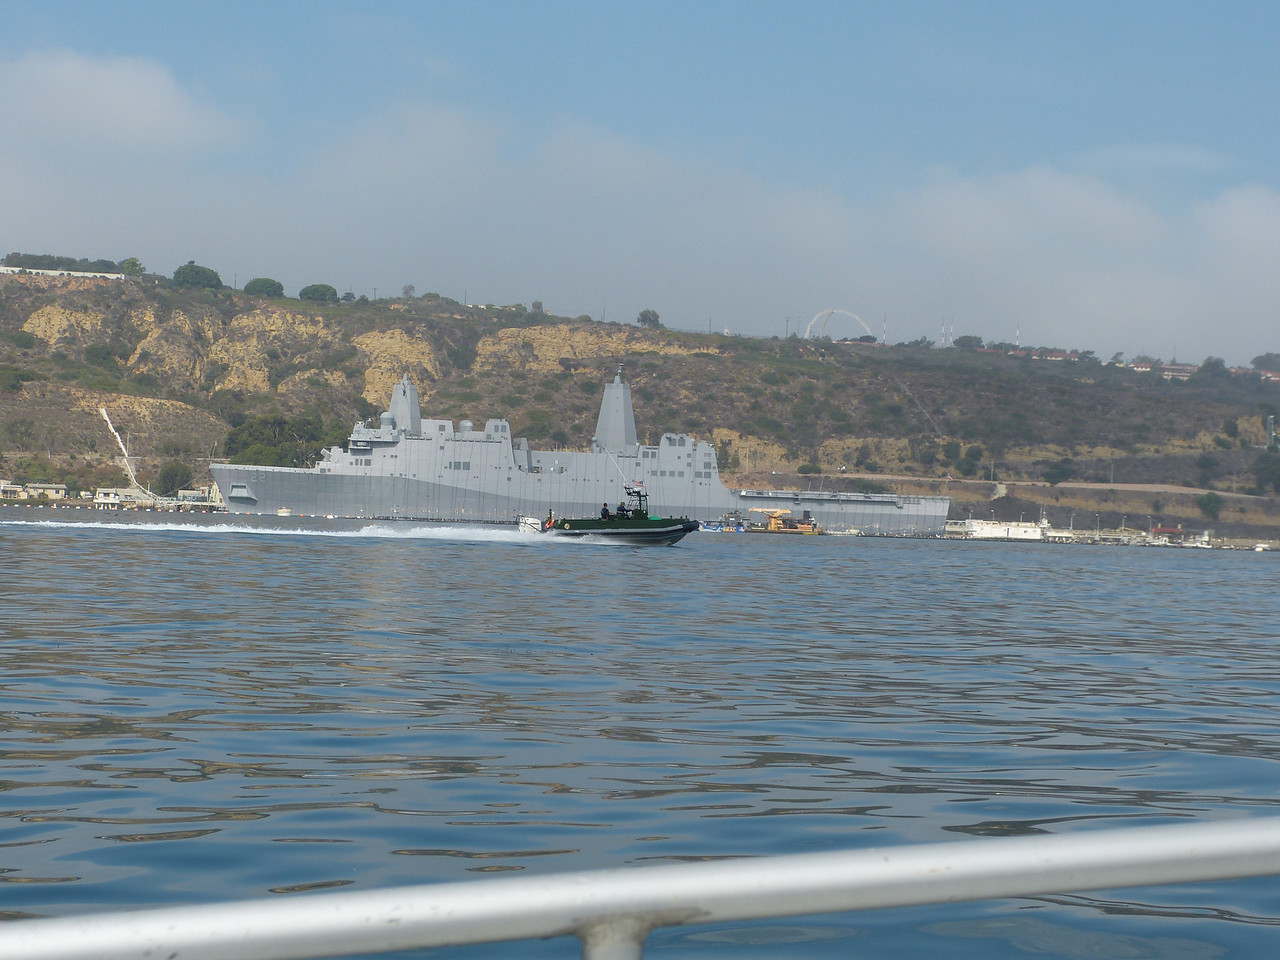 """a Homeland Security vessel speeds along the length of the USS San Diego    (and when I say """"speeds"""", I mean it; Homeland Security boats are driven in the fastest, most reckless manner of any boats I have seen on the water when it wasn't Memorial Day)"""